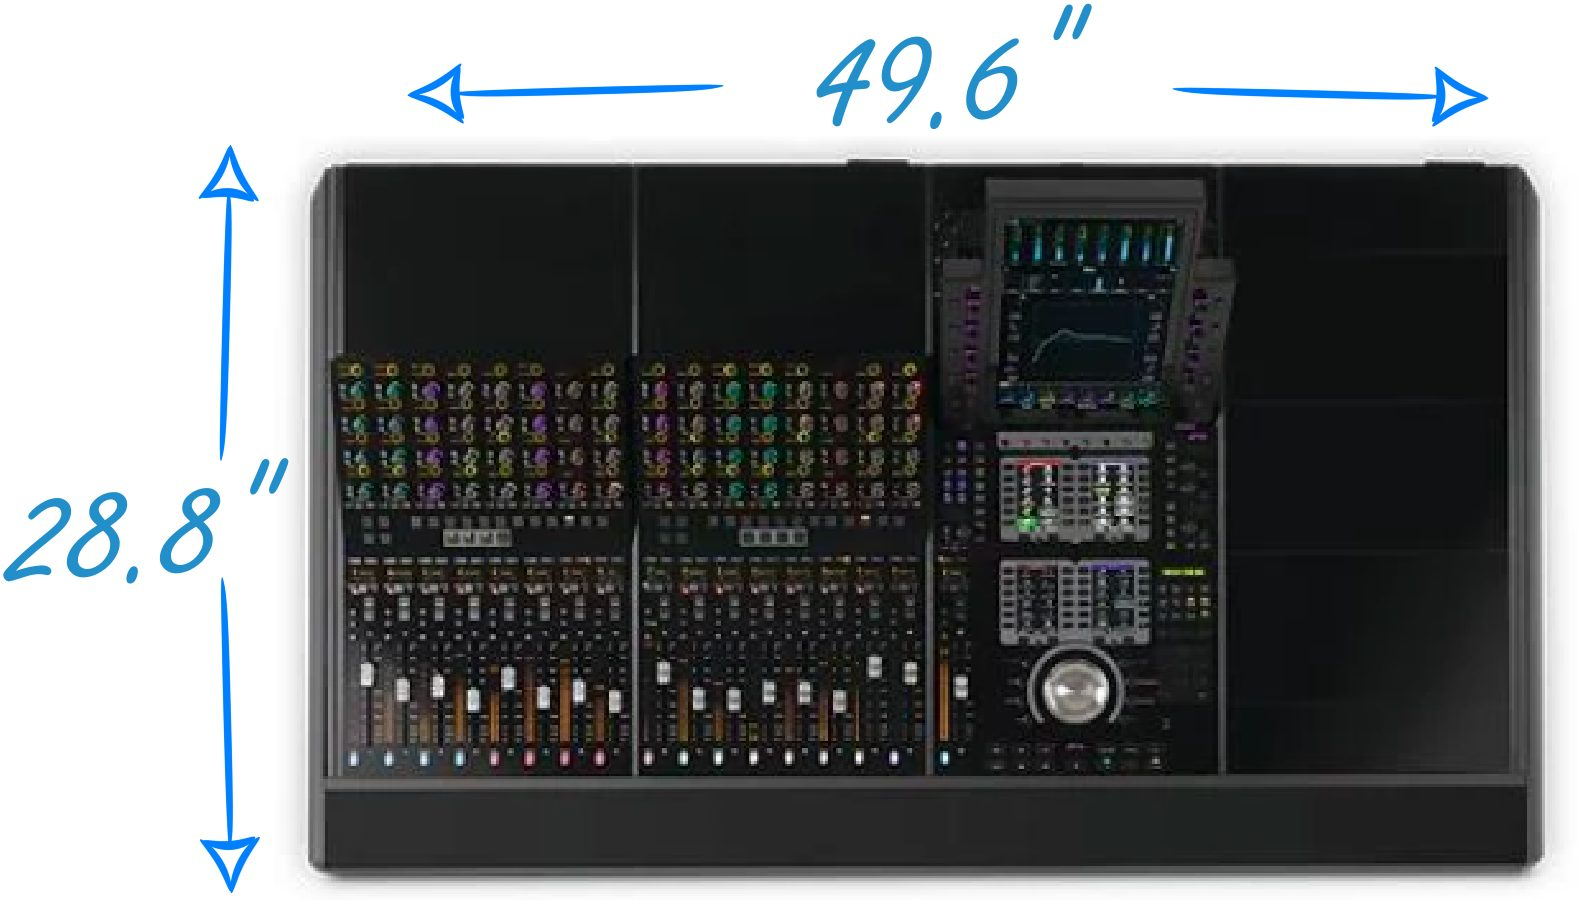 Avid S4 Dimensions for 16-Channel Version